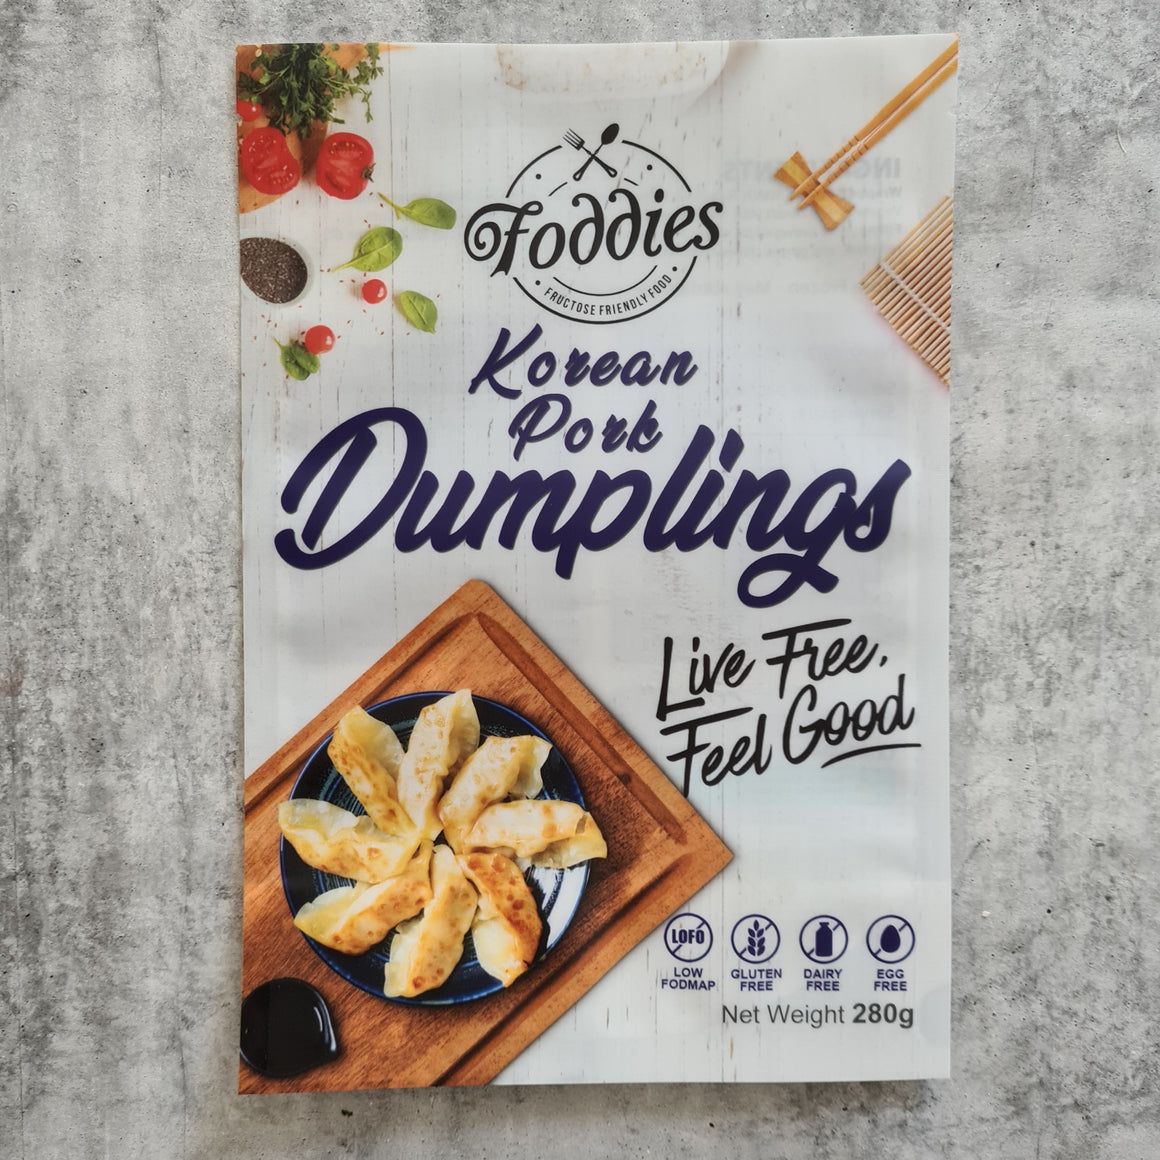 Korean Pork Dumplings - Foddies Low FODMAP